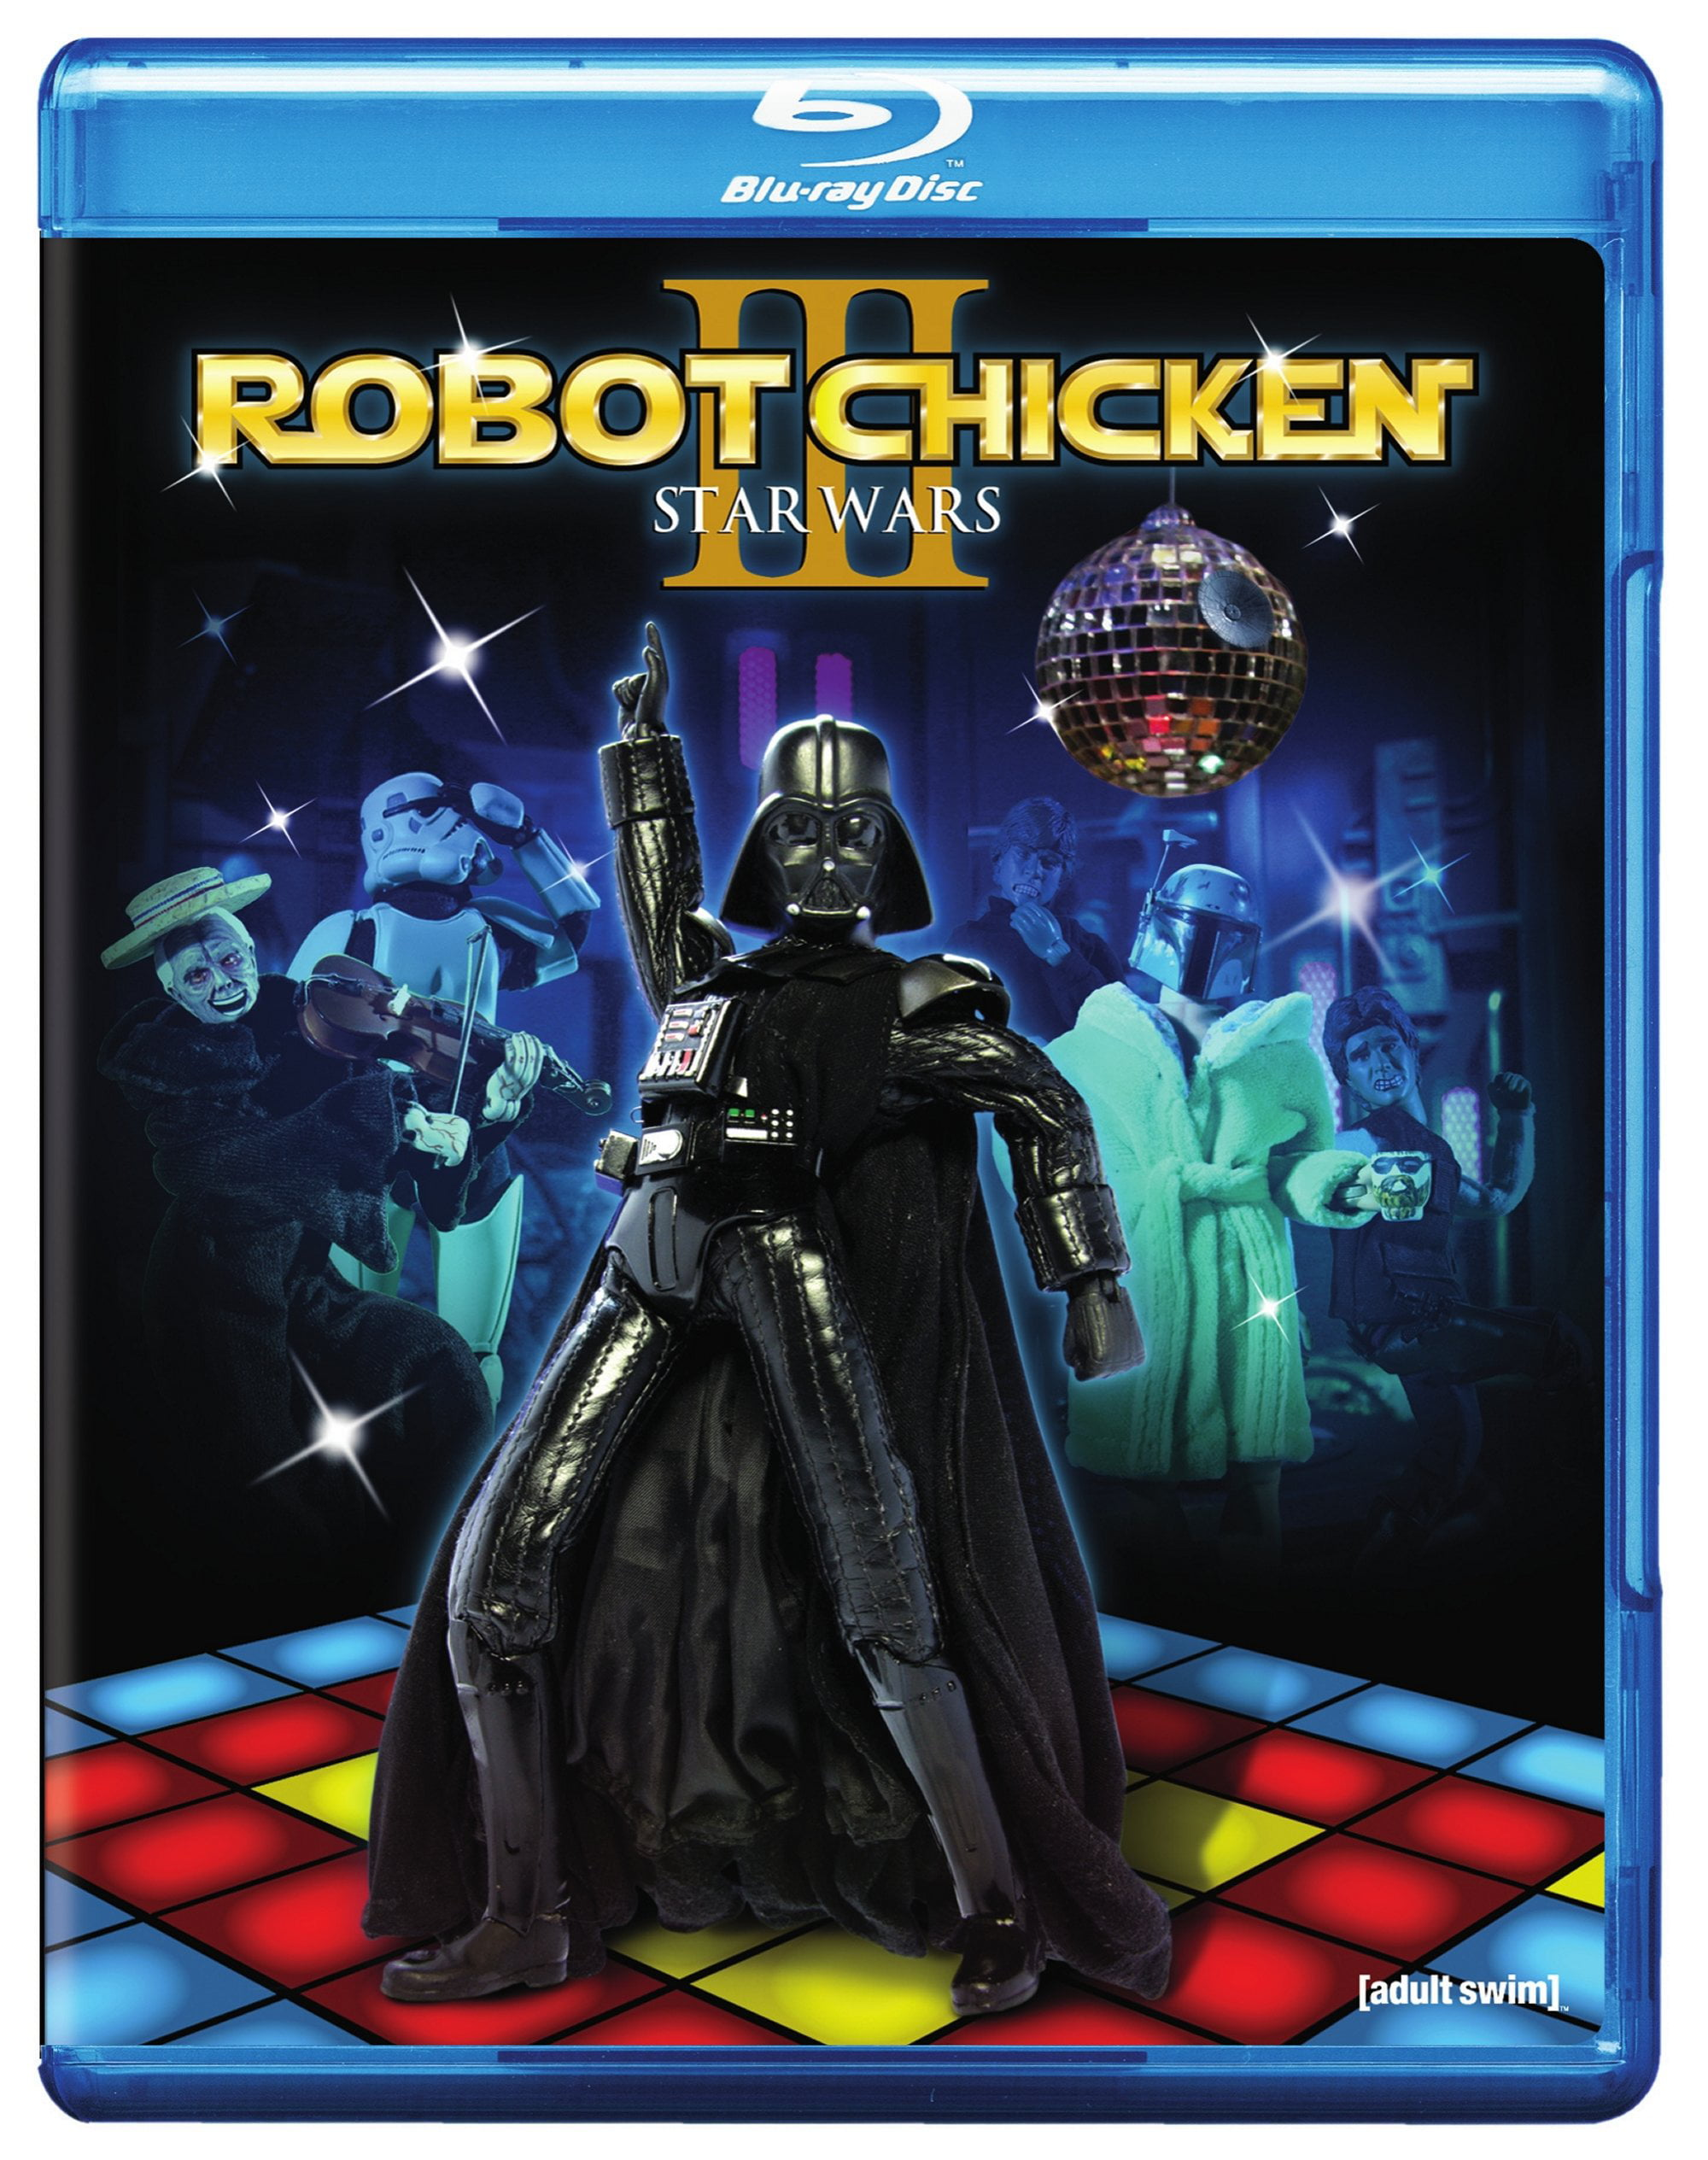 Robot Chicken Star Wars: Episode III (Blu-ray) by WARNER HOME ENTERTAINMENT